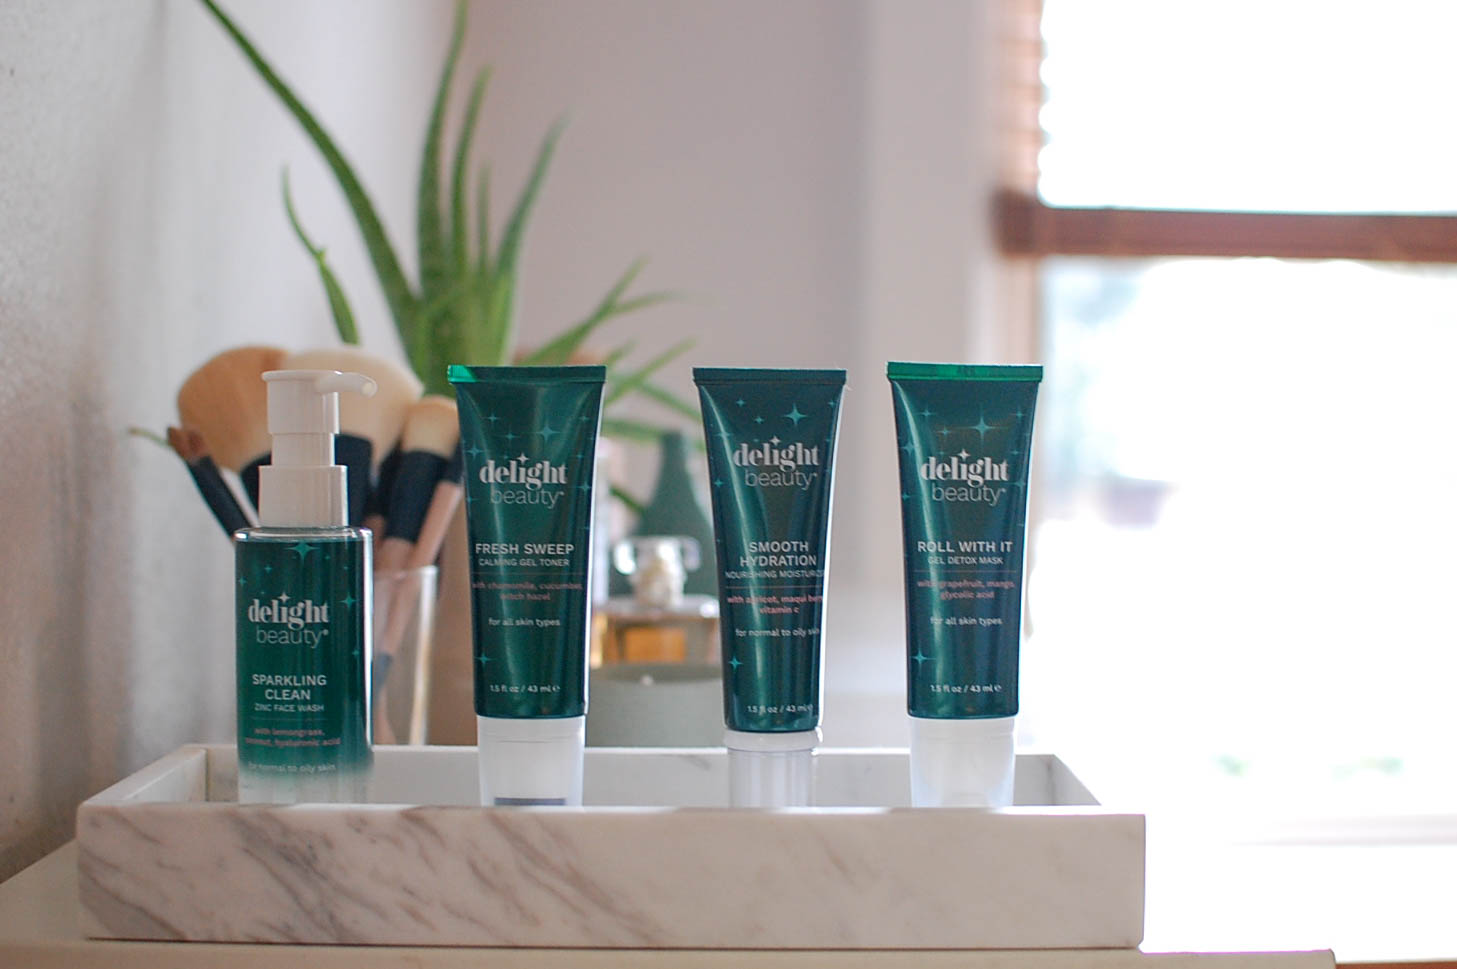 Delight Beauty Skincare Brings Delight To My Daily Routine